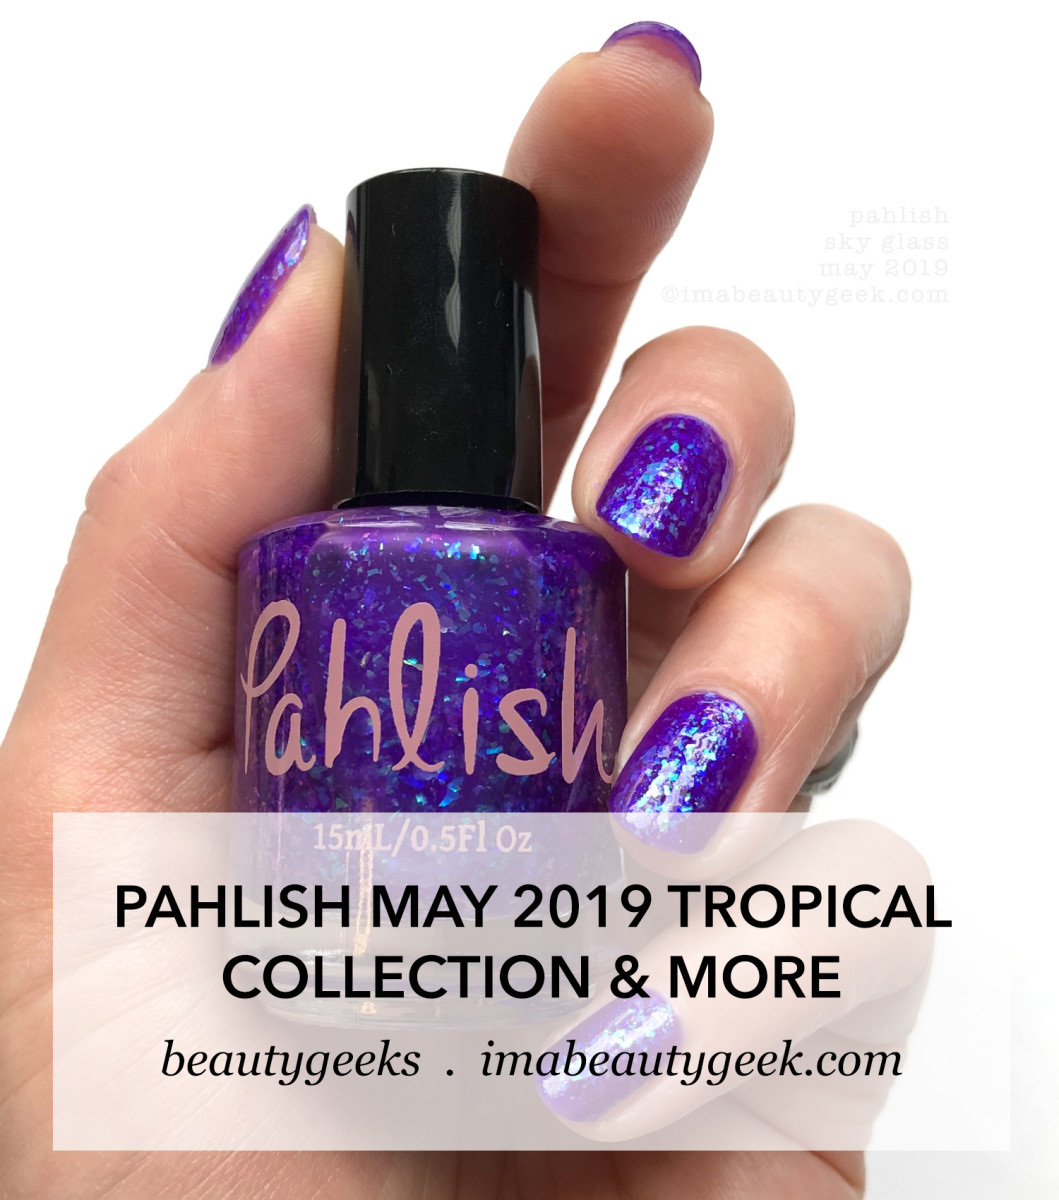 Pahlish Tropical Collection Violet Duo Swatches May 2019